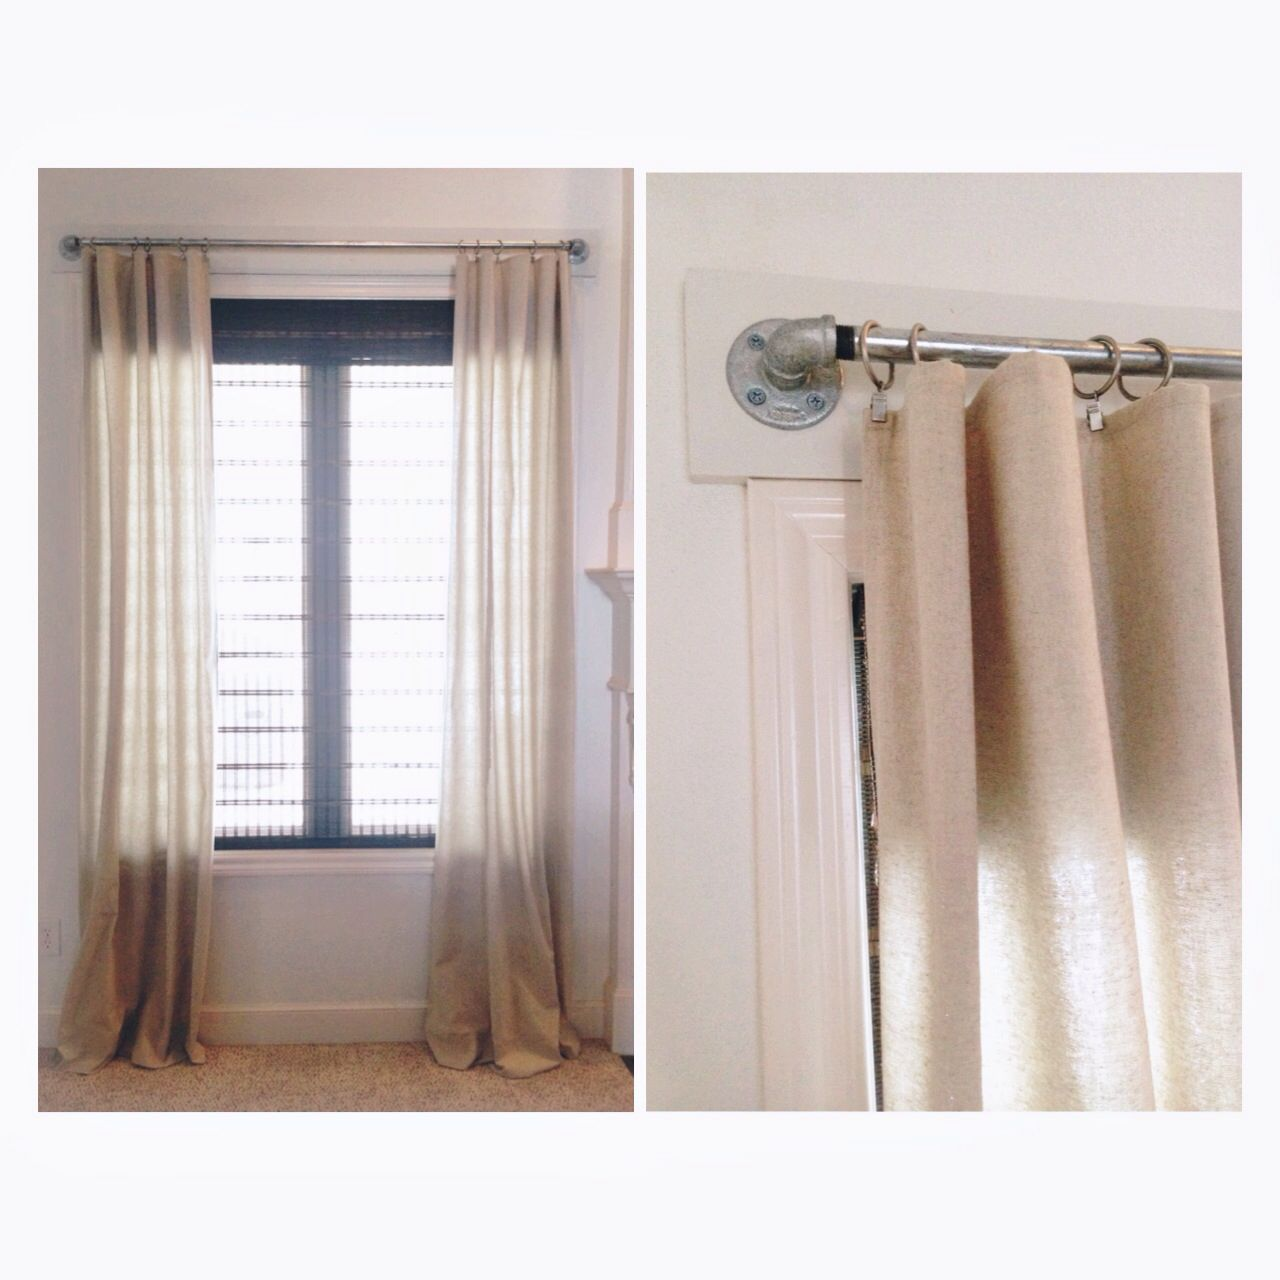 Curtain Rods Galvanized Pipe Home Ideas Pinterest